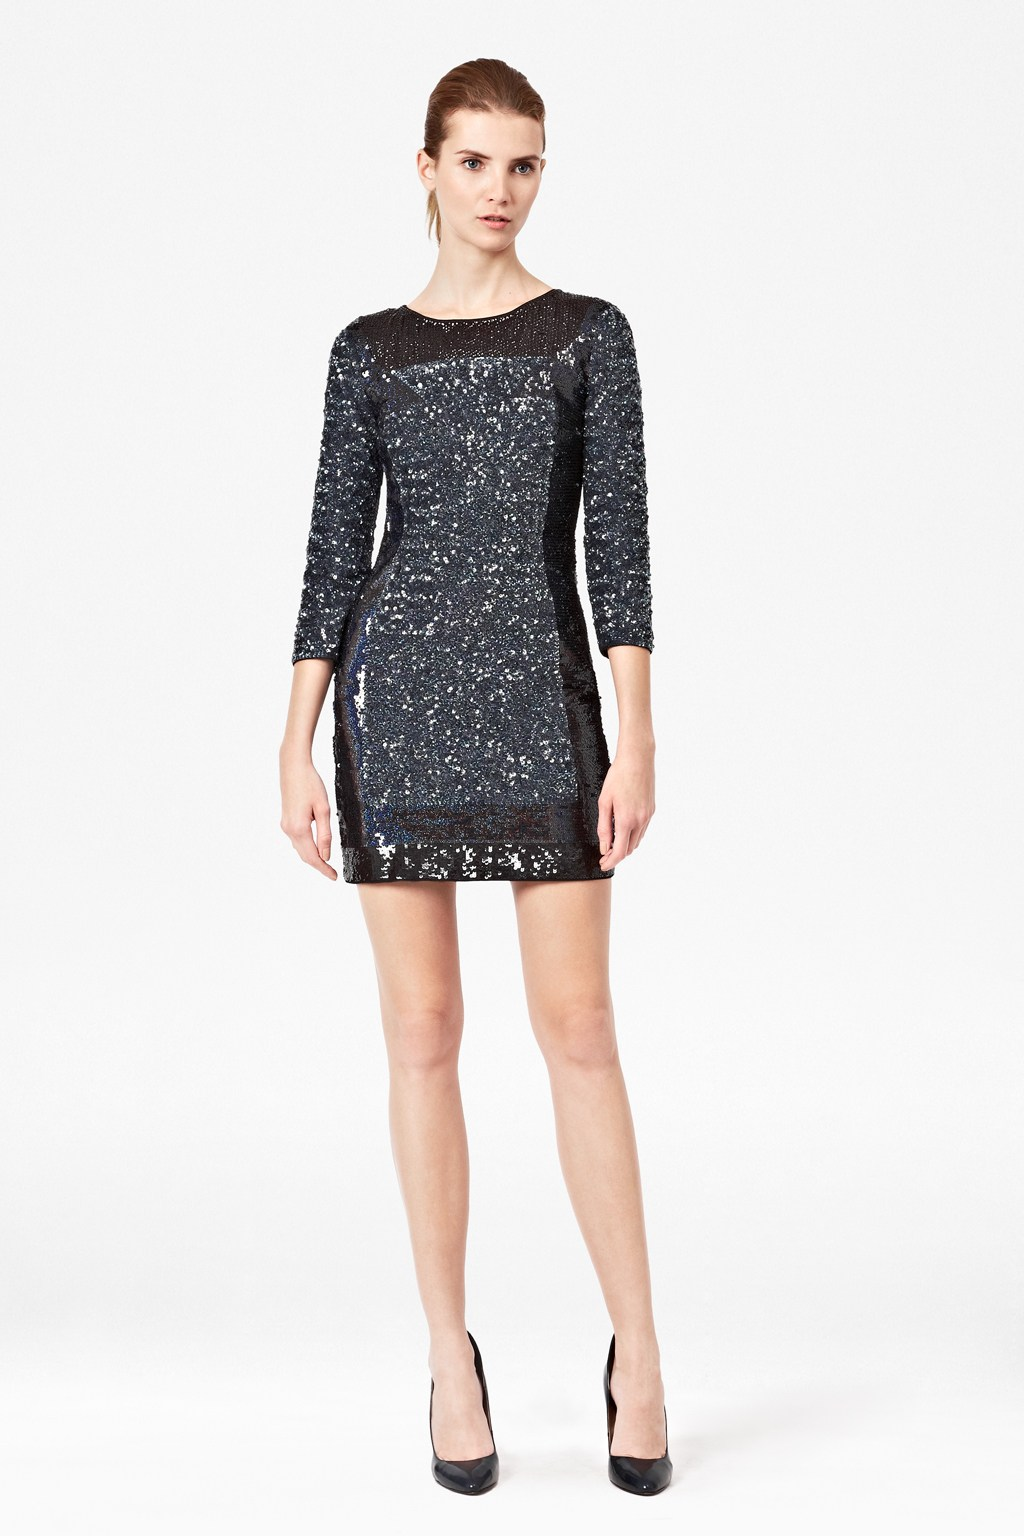 Black Sequin Tunic Dress - Artee Shirt